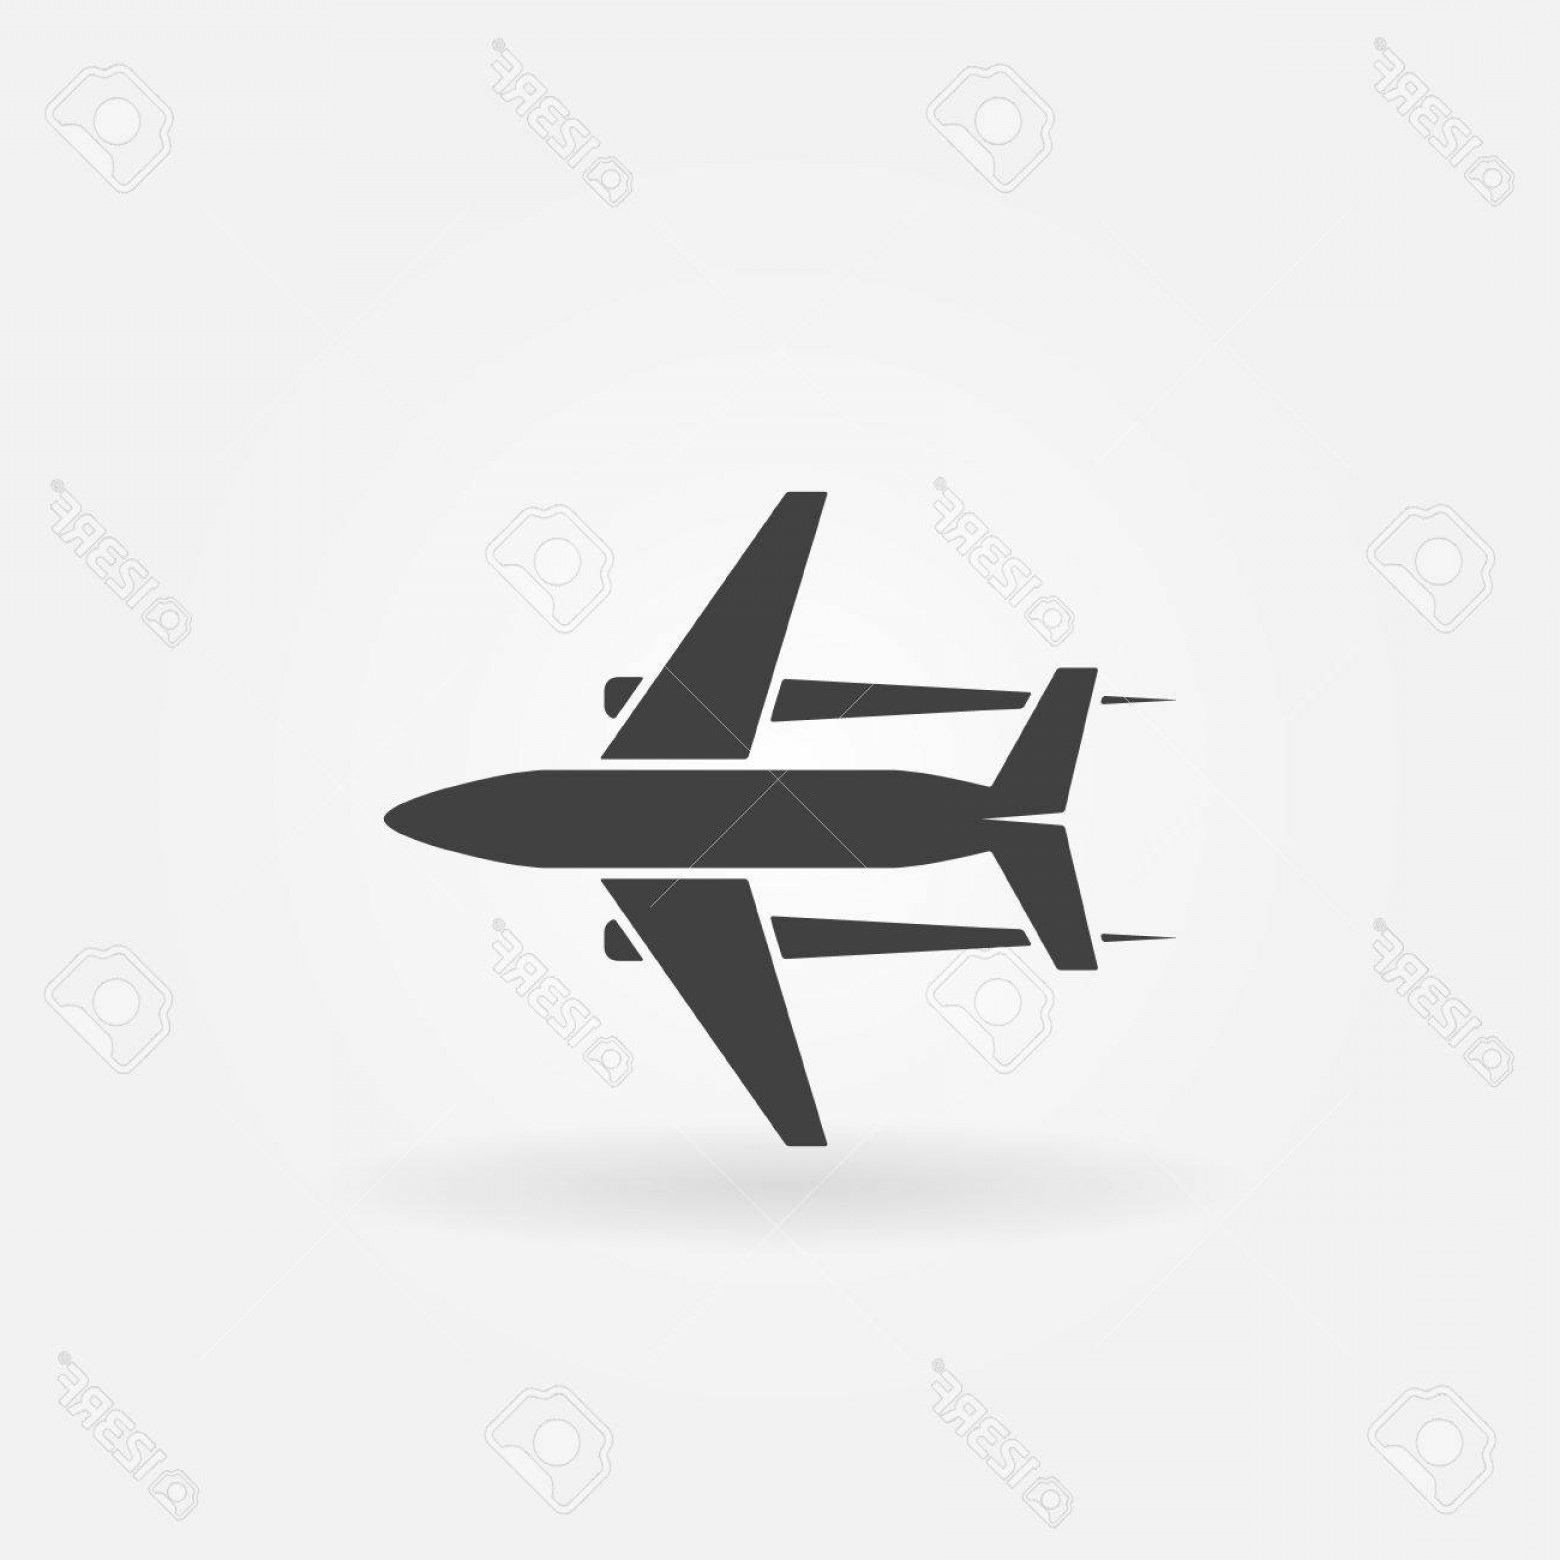 Vector Airplane Symbol: Photostock Vector Plane Icon Or Logo Vector Black Symbol Of Flying Airplane